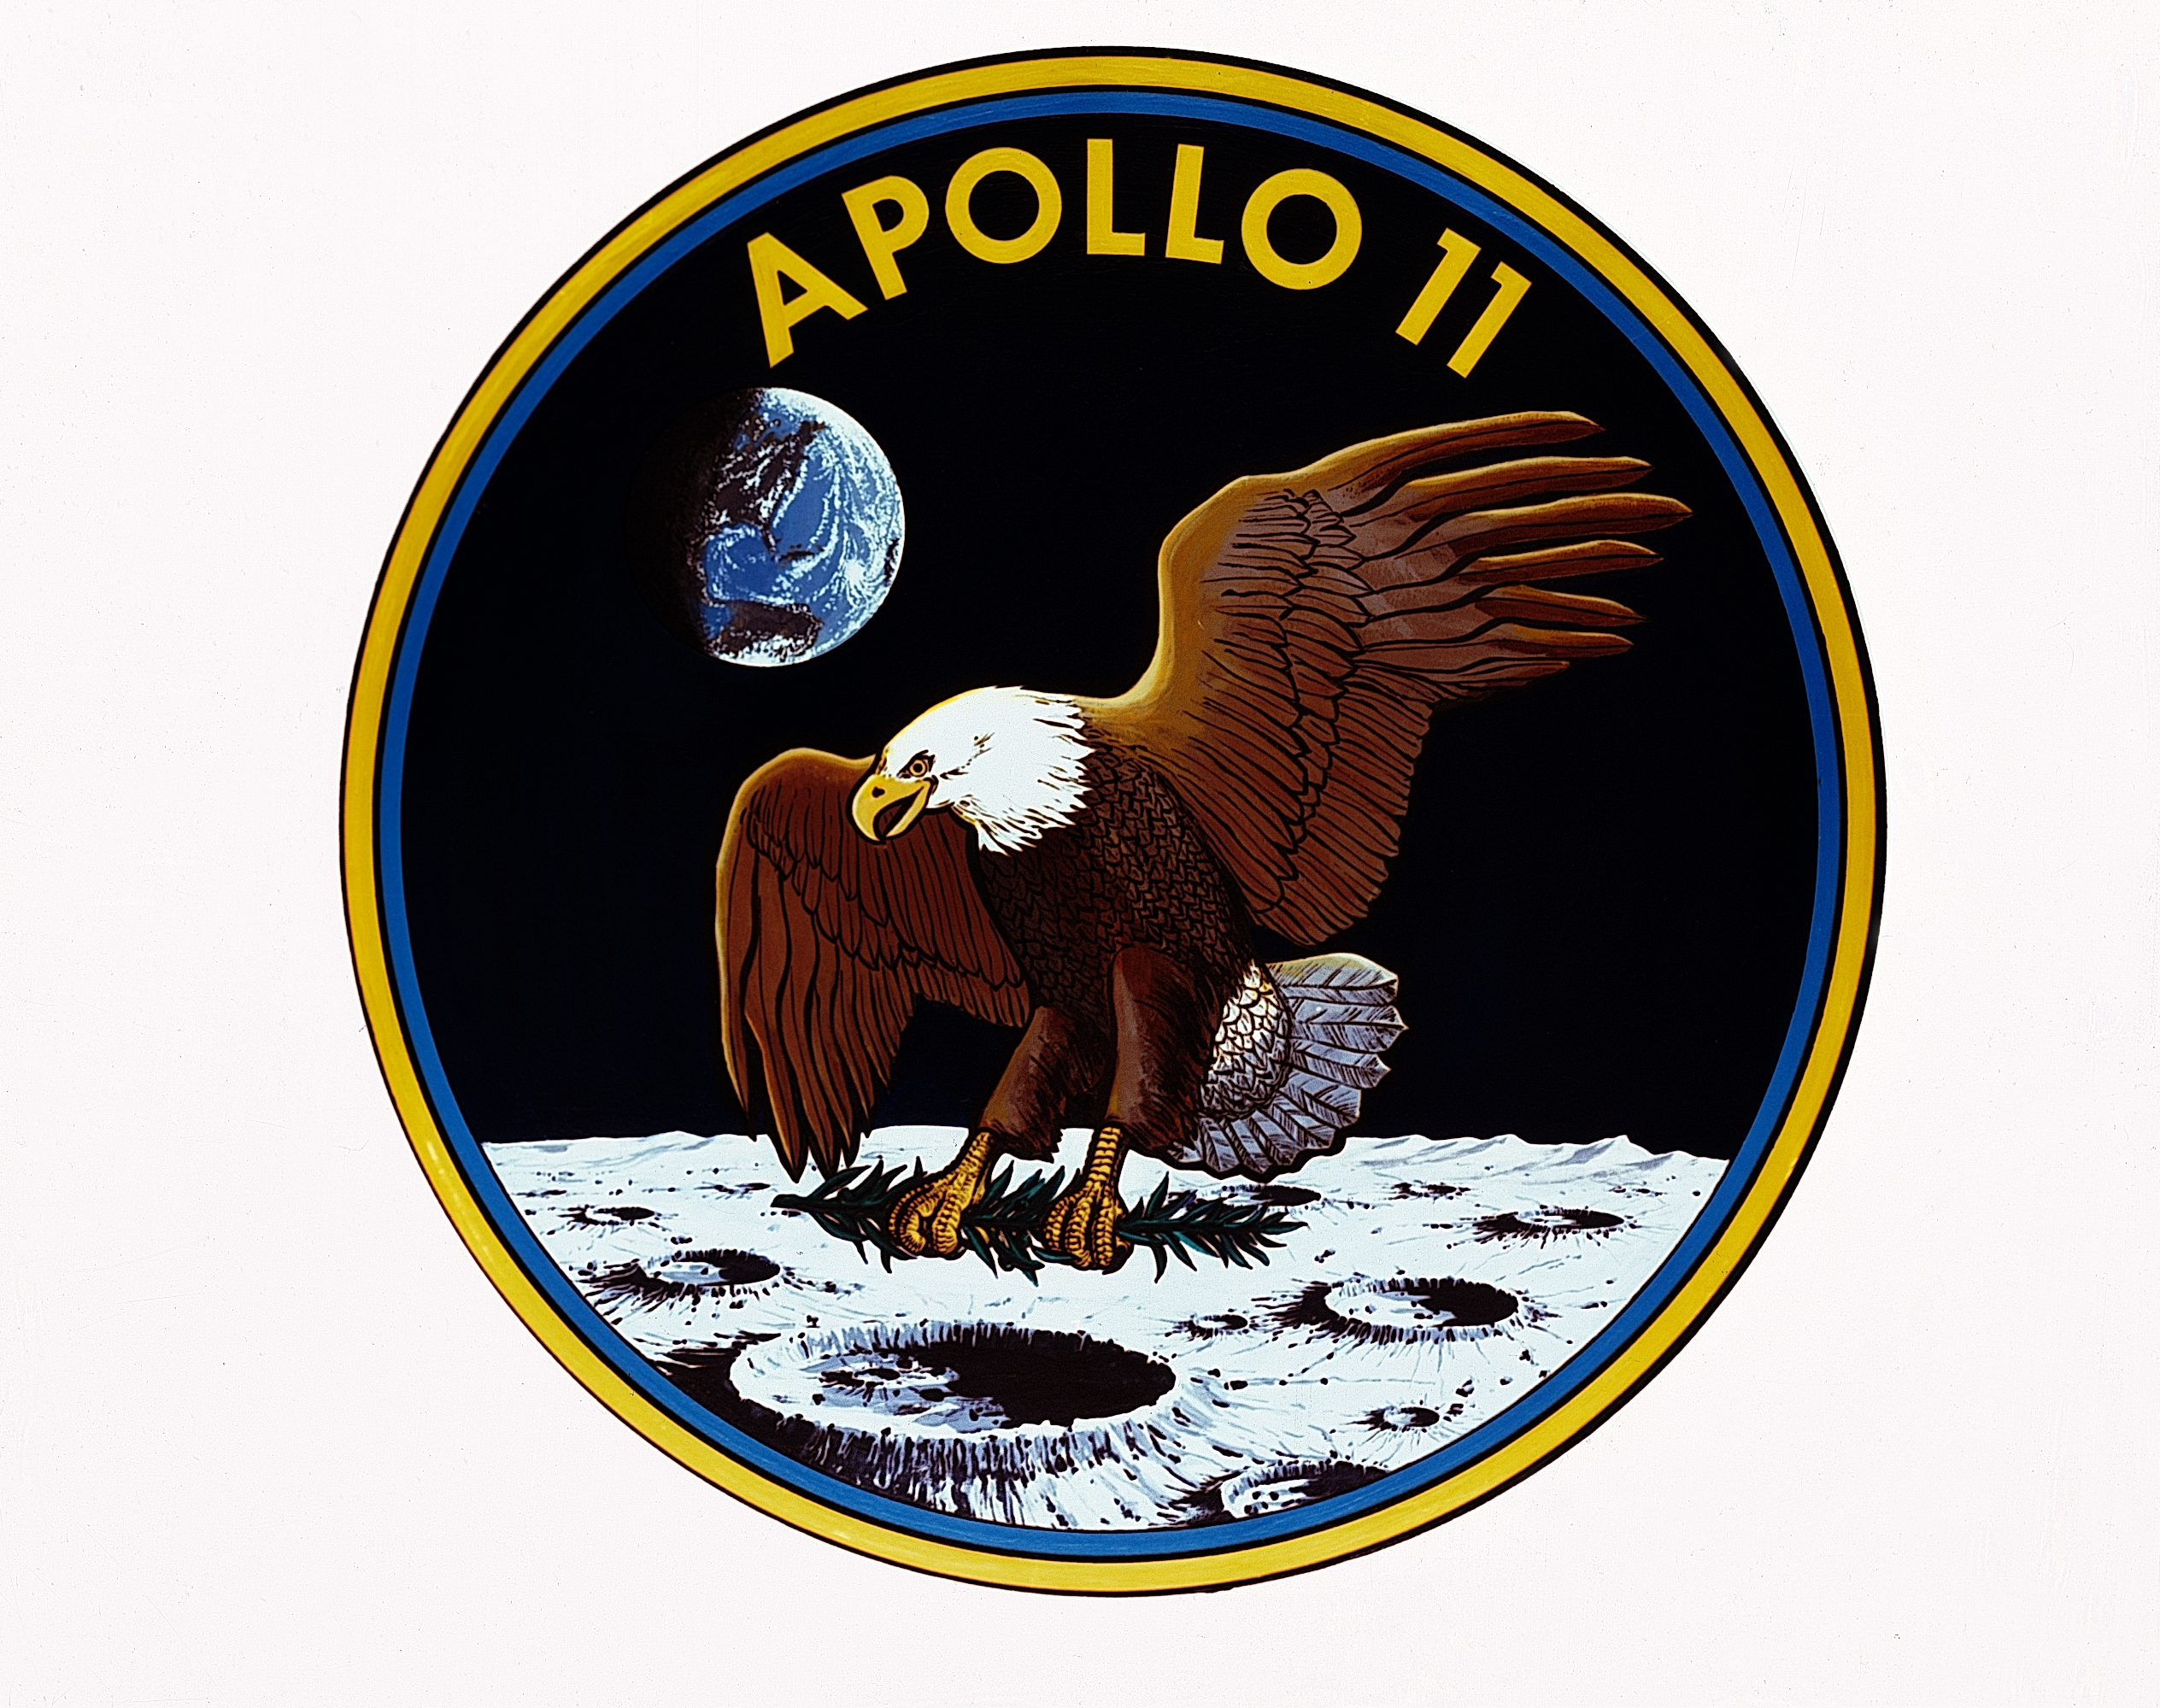 Apollo 11 patch logo